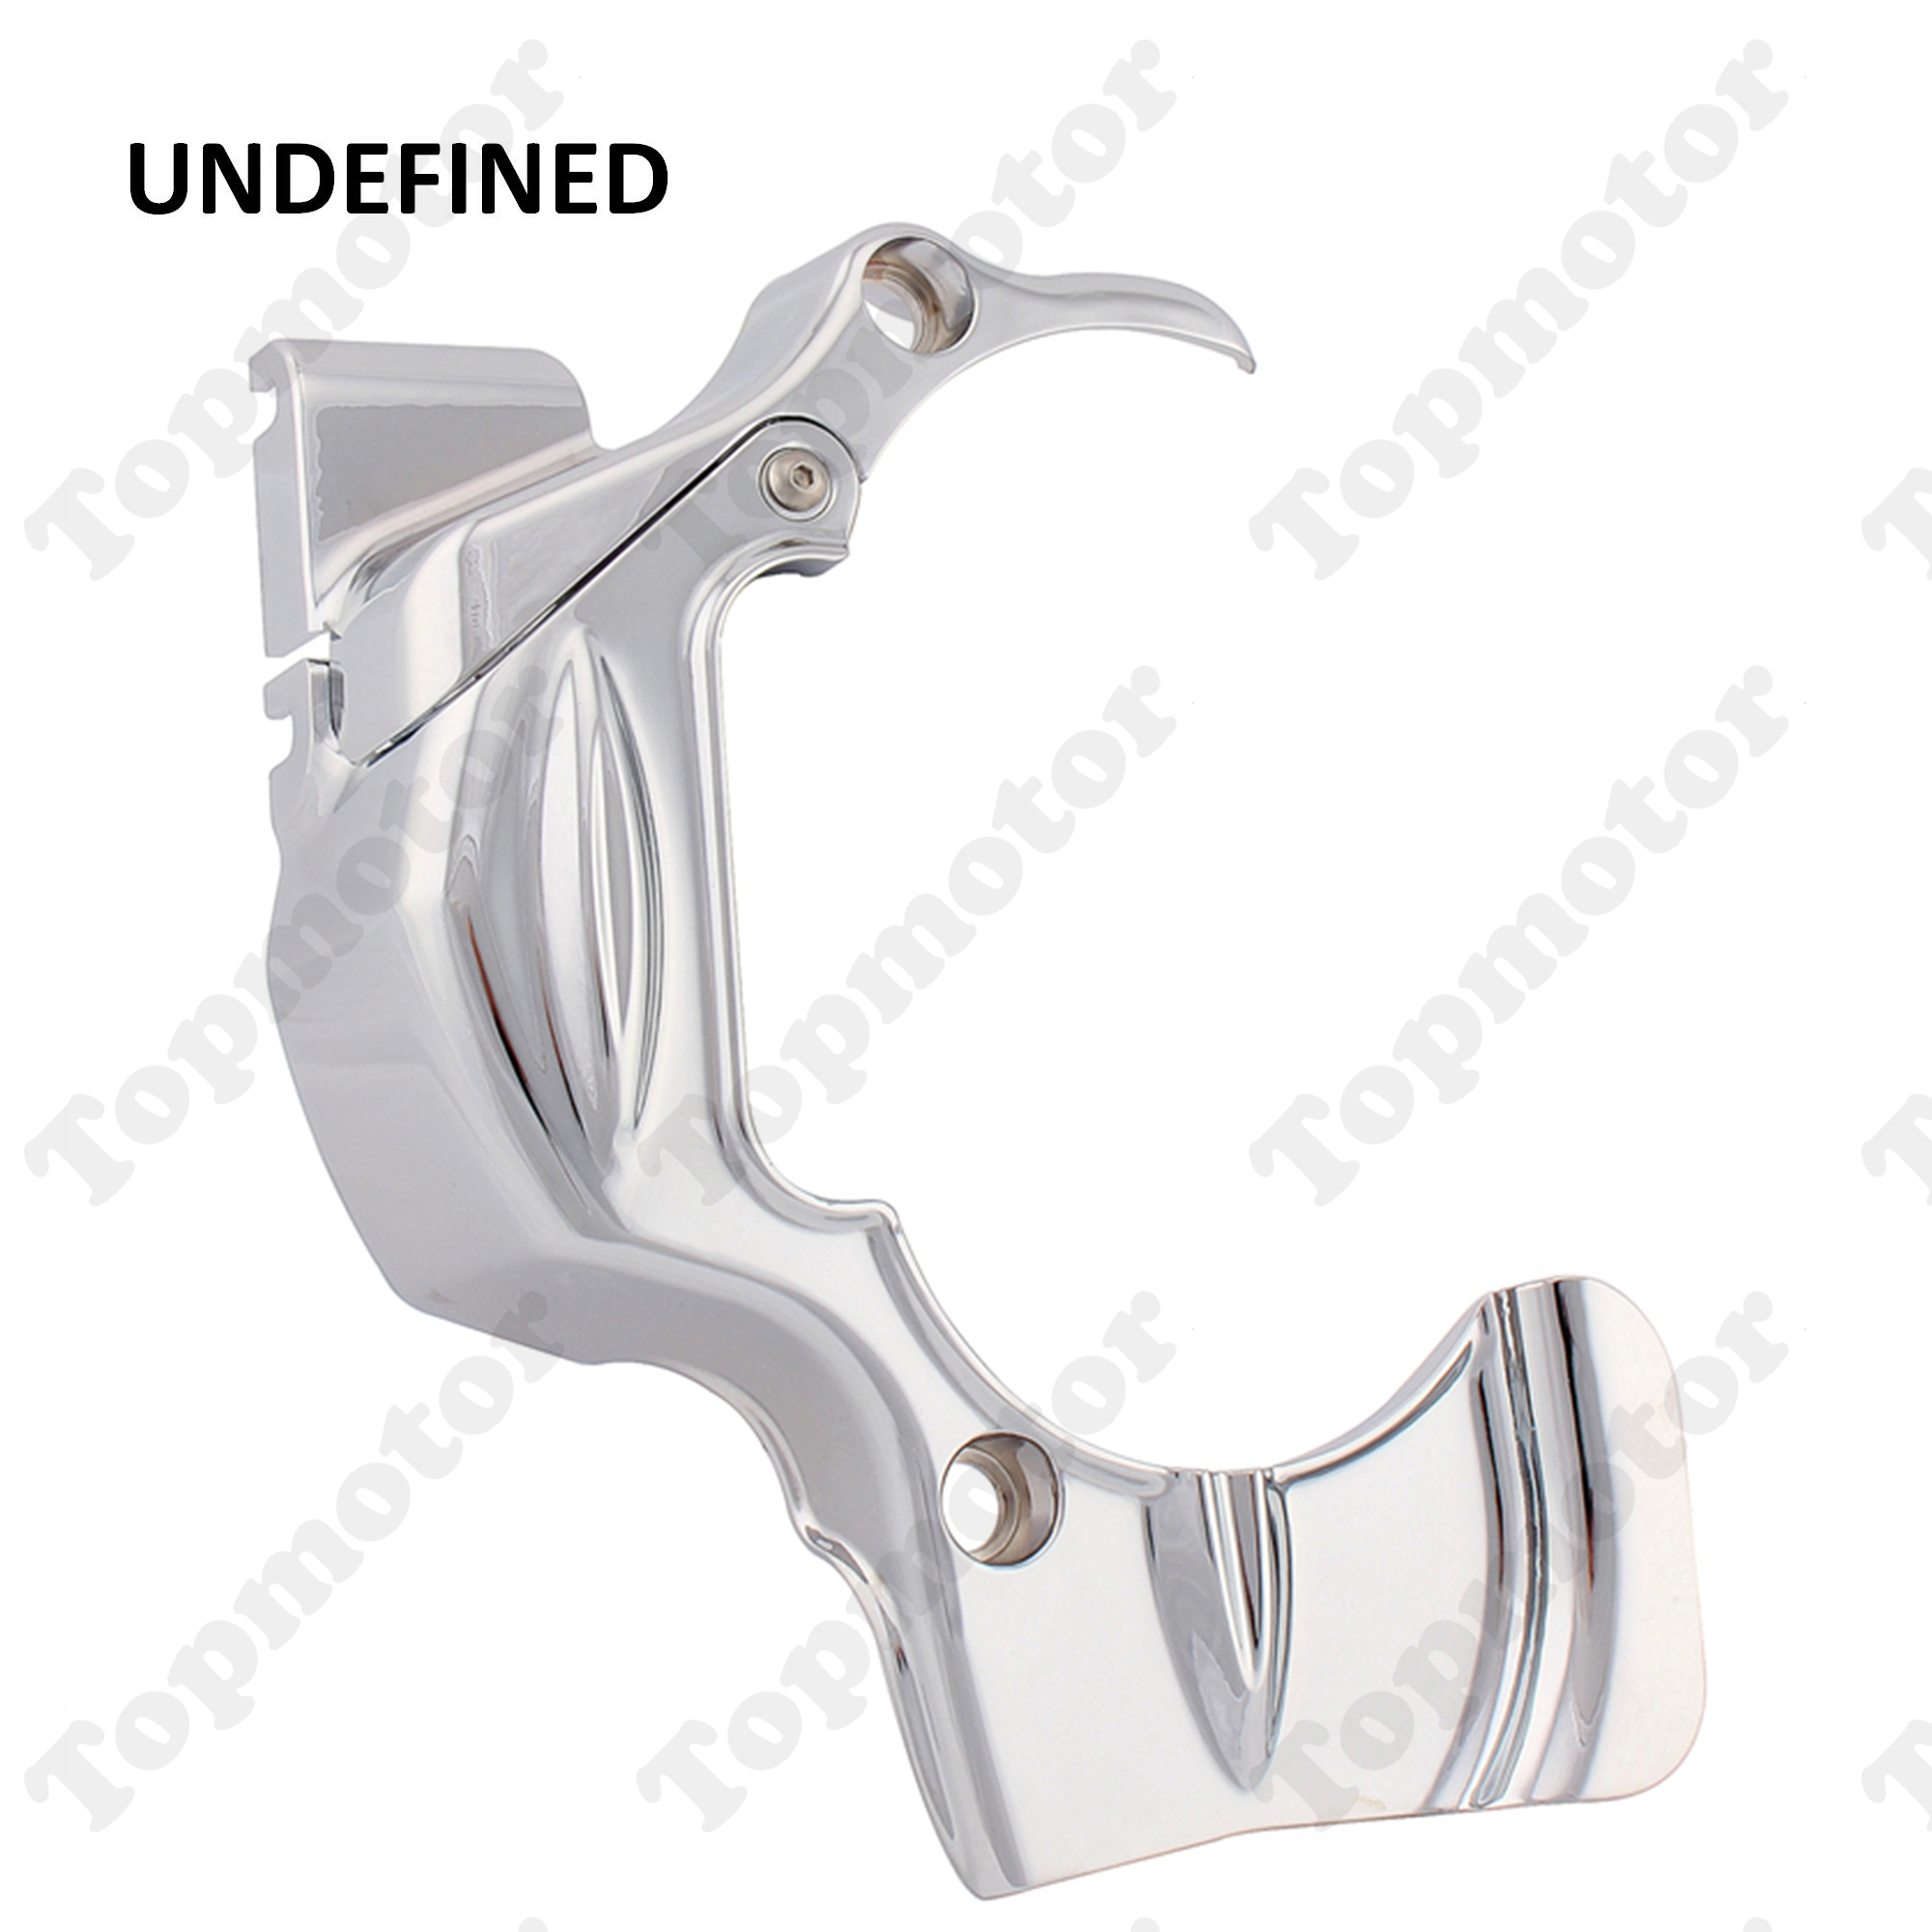 Motorcycle Bike Chrome Transmission Shroud Cover Trim For Harley Touring Road King Electra Glide 2009 2010 2011-2016 UNDEFINED светлана лаврова собака фрося и ее люди